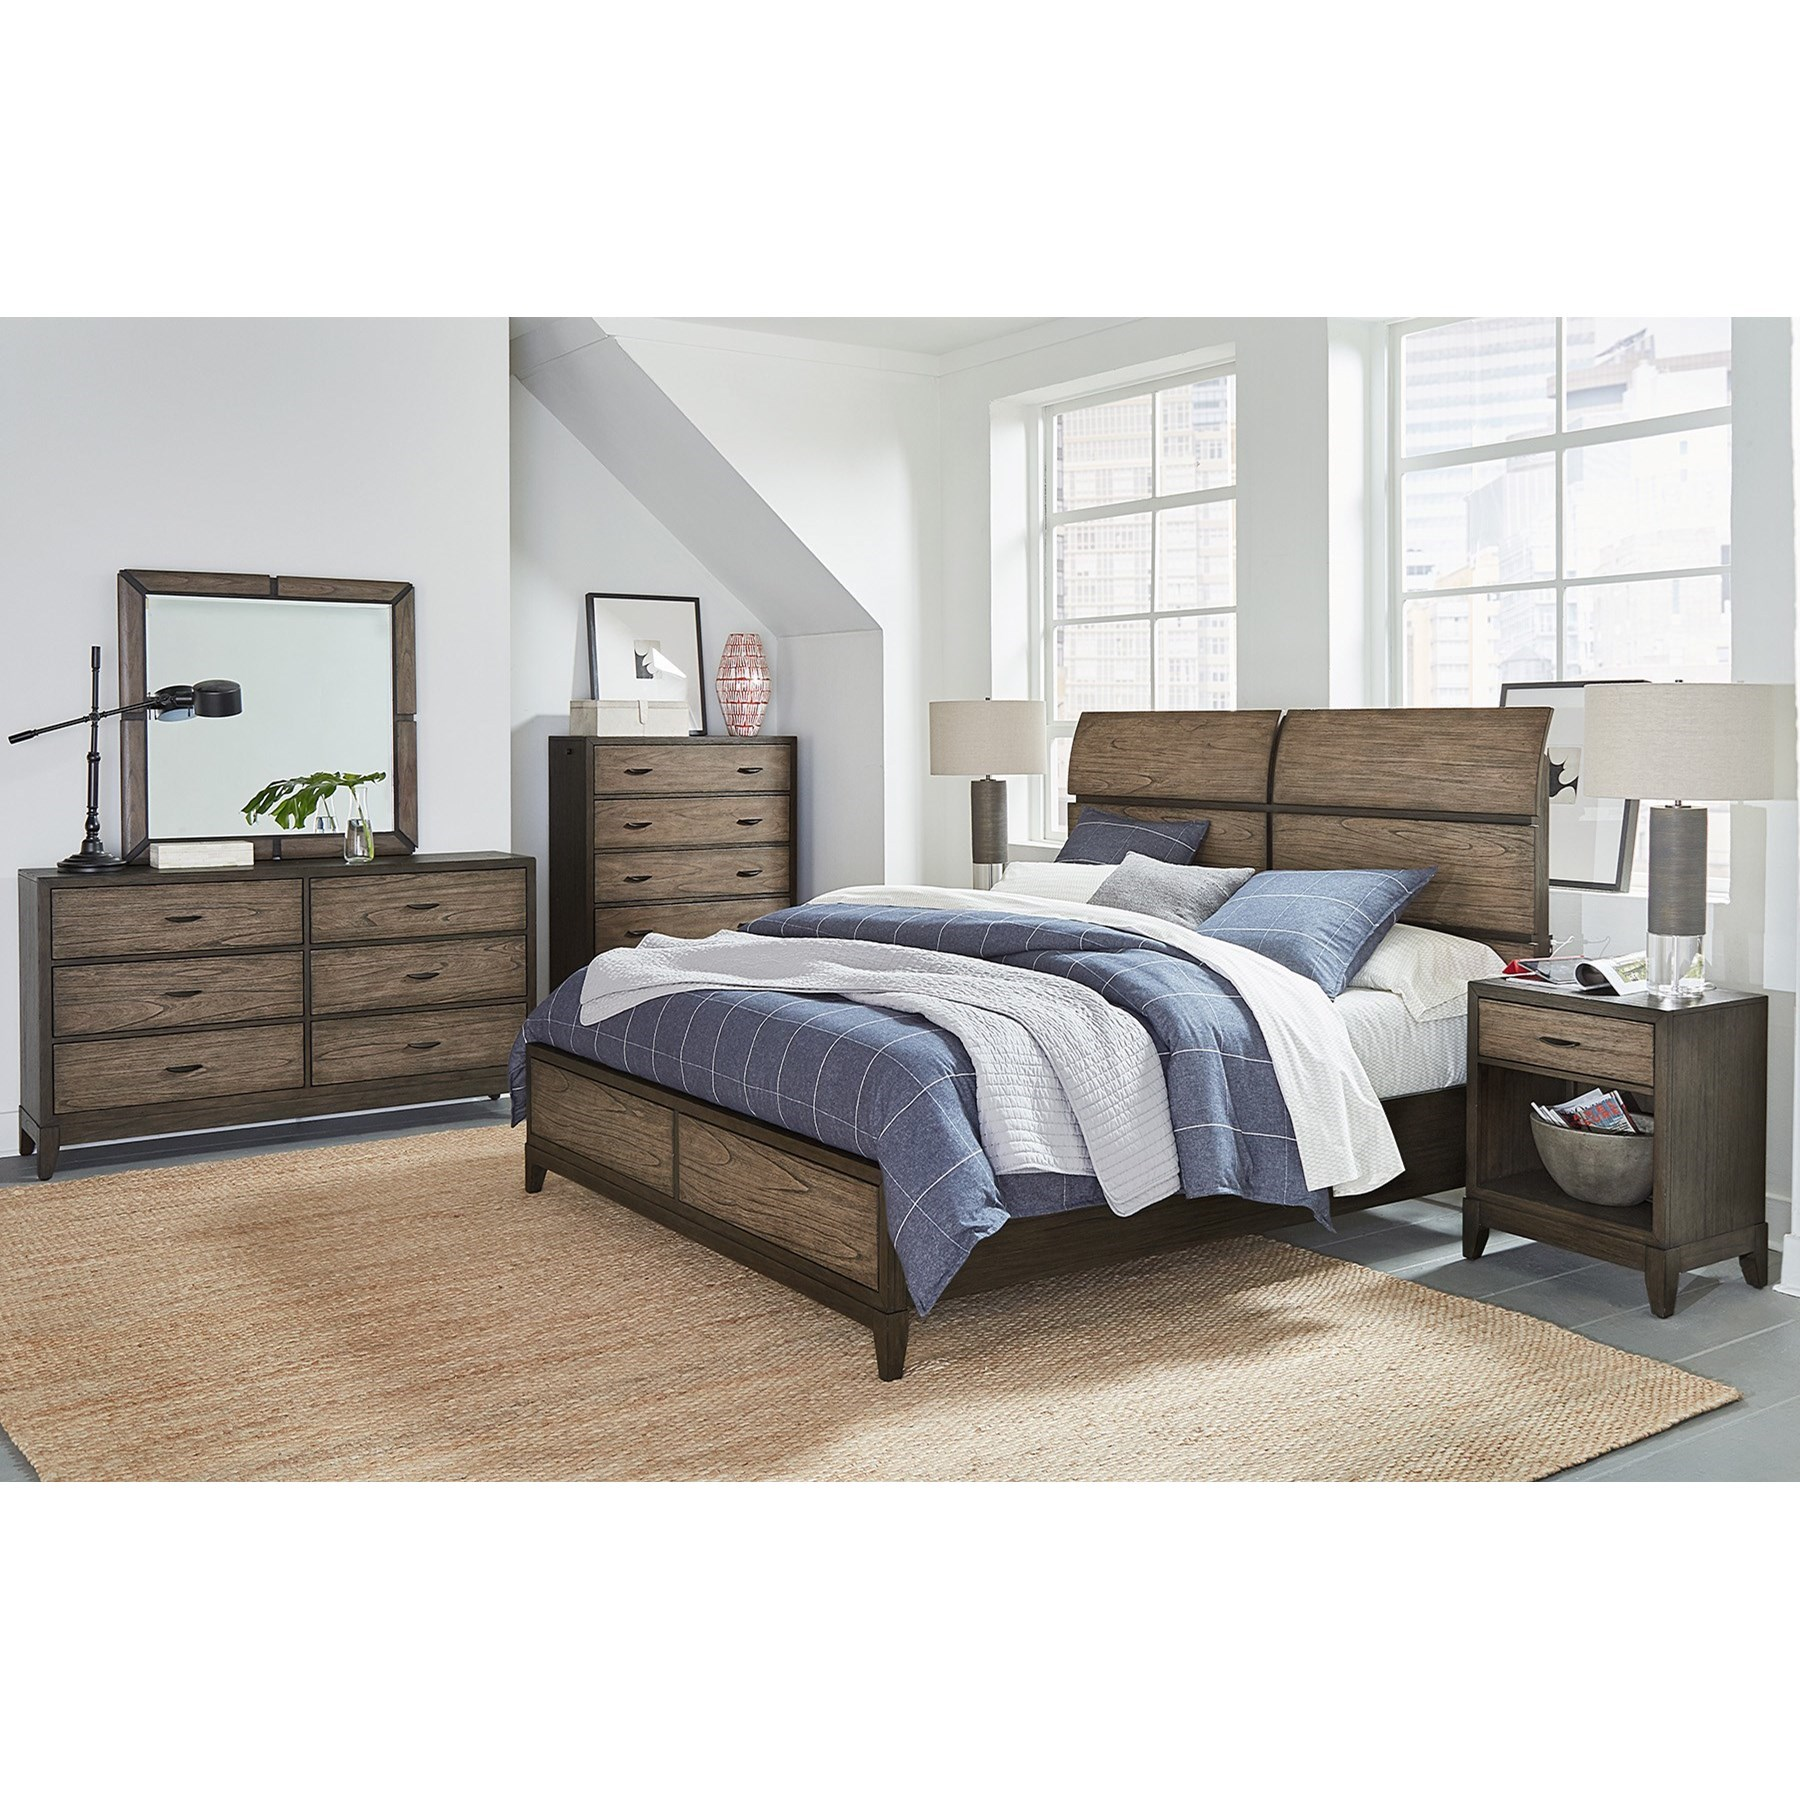 Westlake King Bedroom Group by Aspenhome at Prime Brothers Furniture